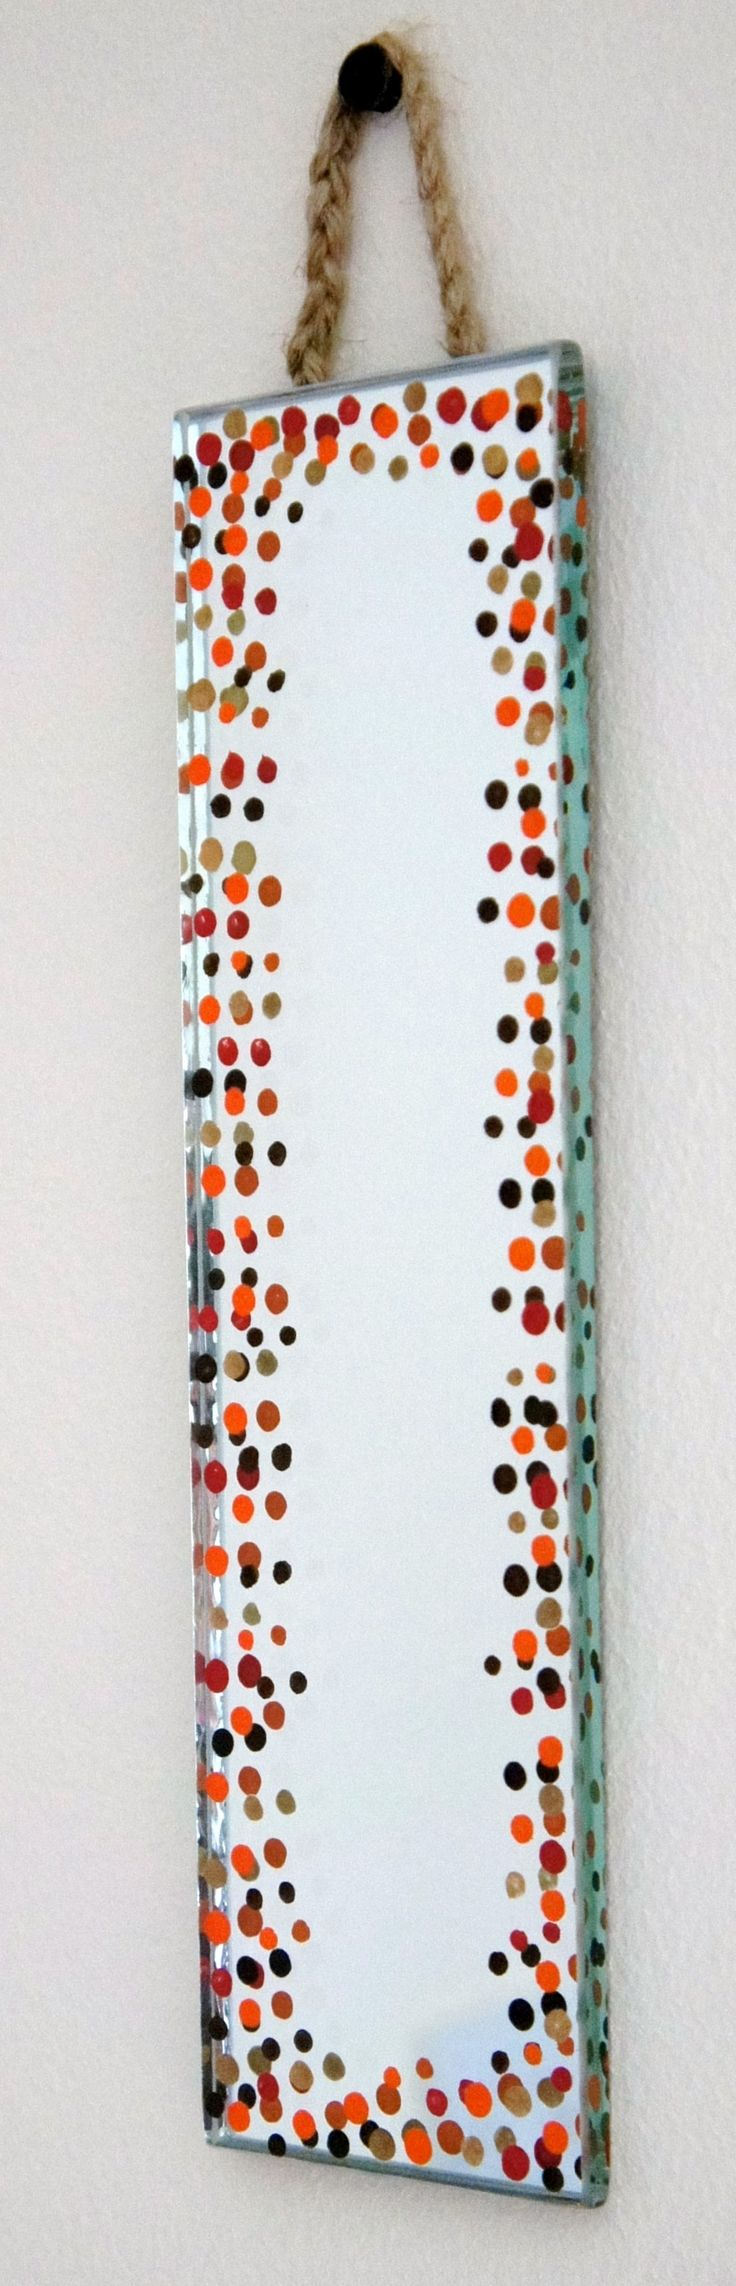 funky dotty design - hand painted mirror tile